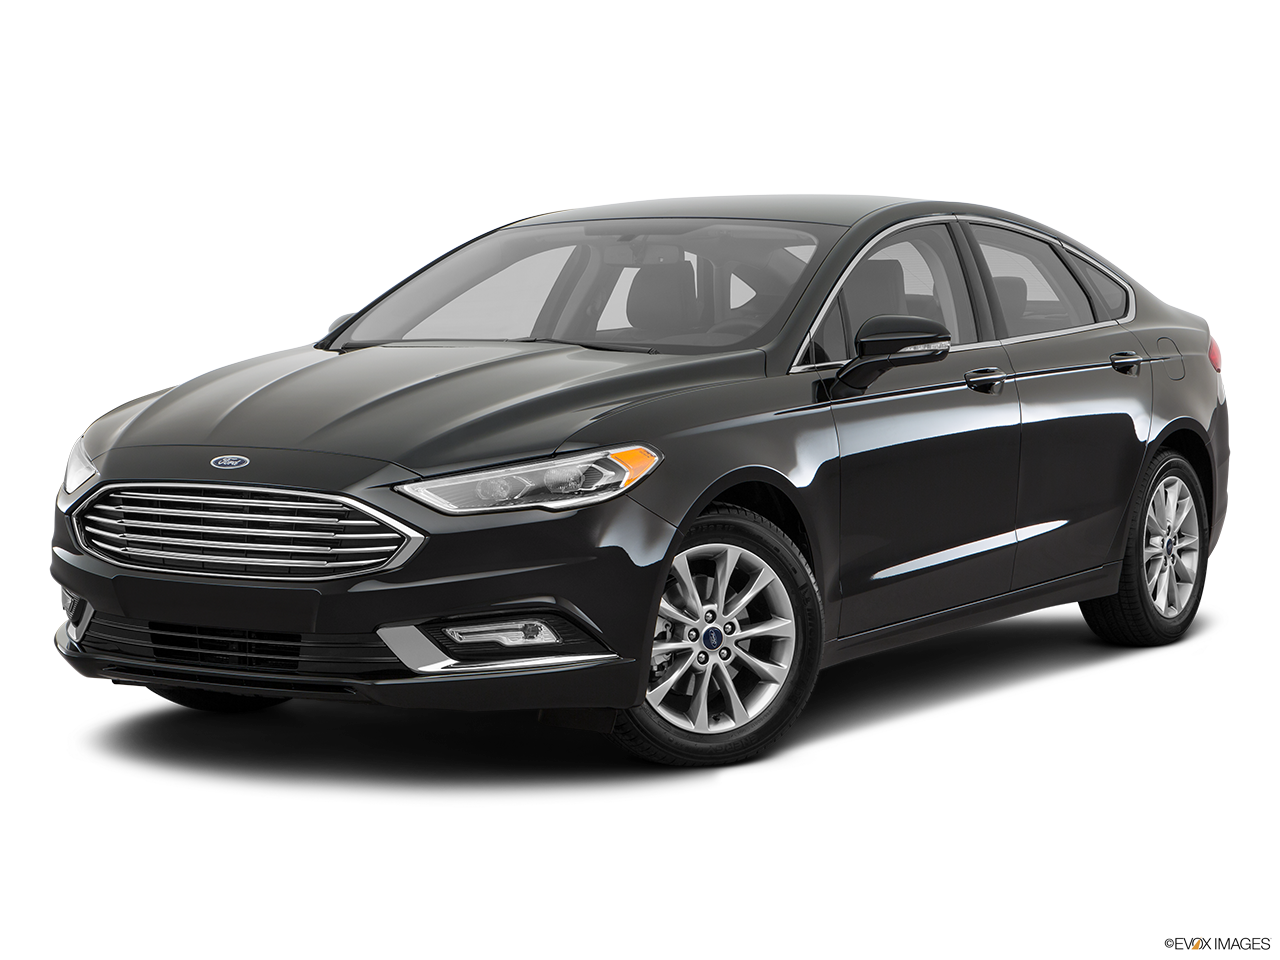 Test Drive A 2017 Ford Fusion at All Star Ford Palestine in Palestine